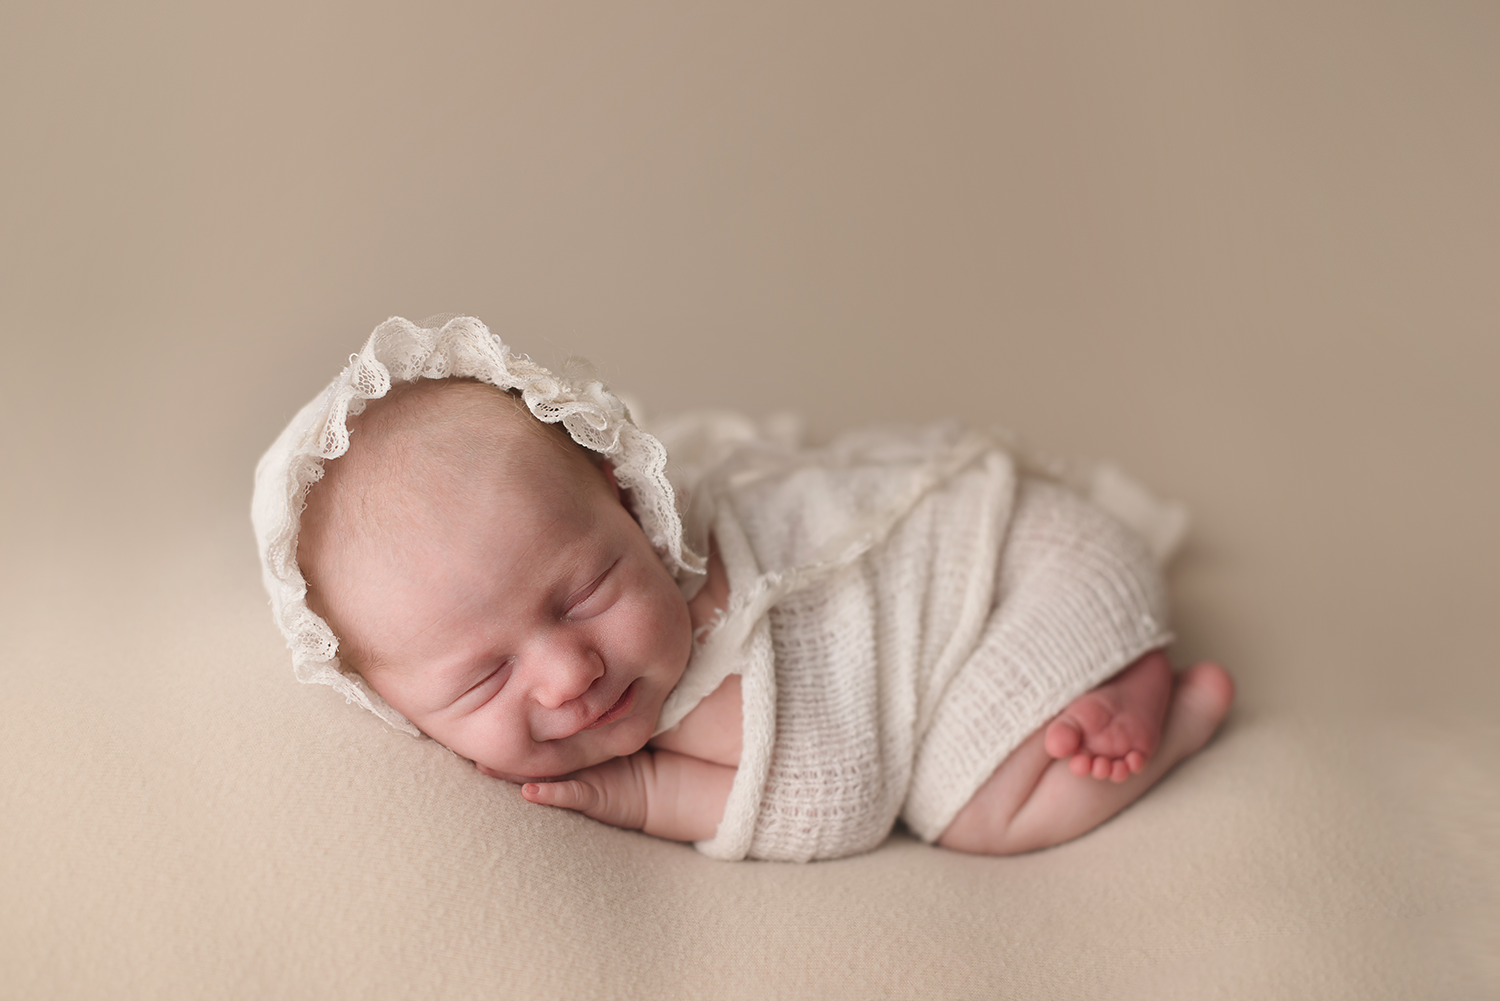 infant-photographers-bare-baby-photography.png